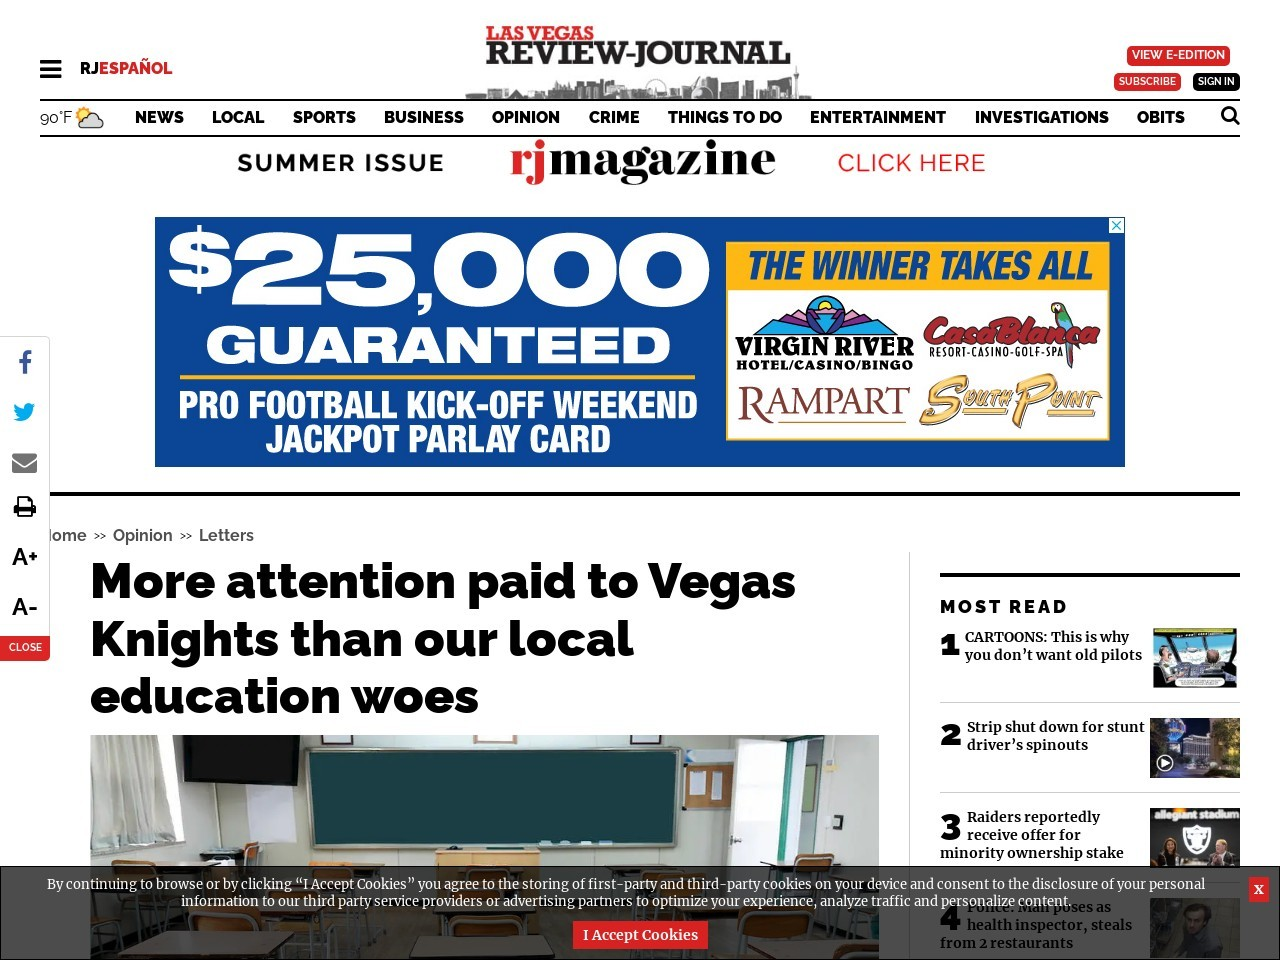 More attention paid to Vegas Knights than our local education woes